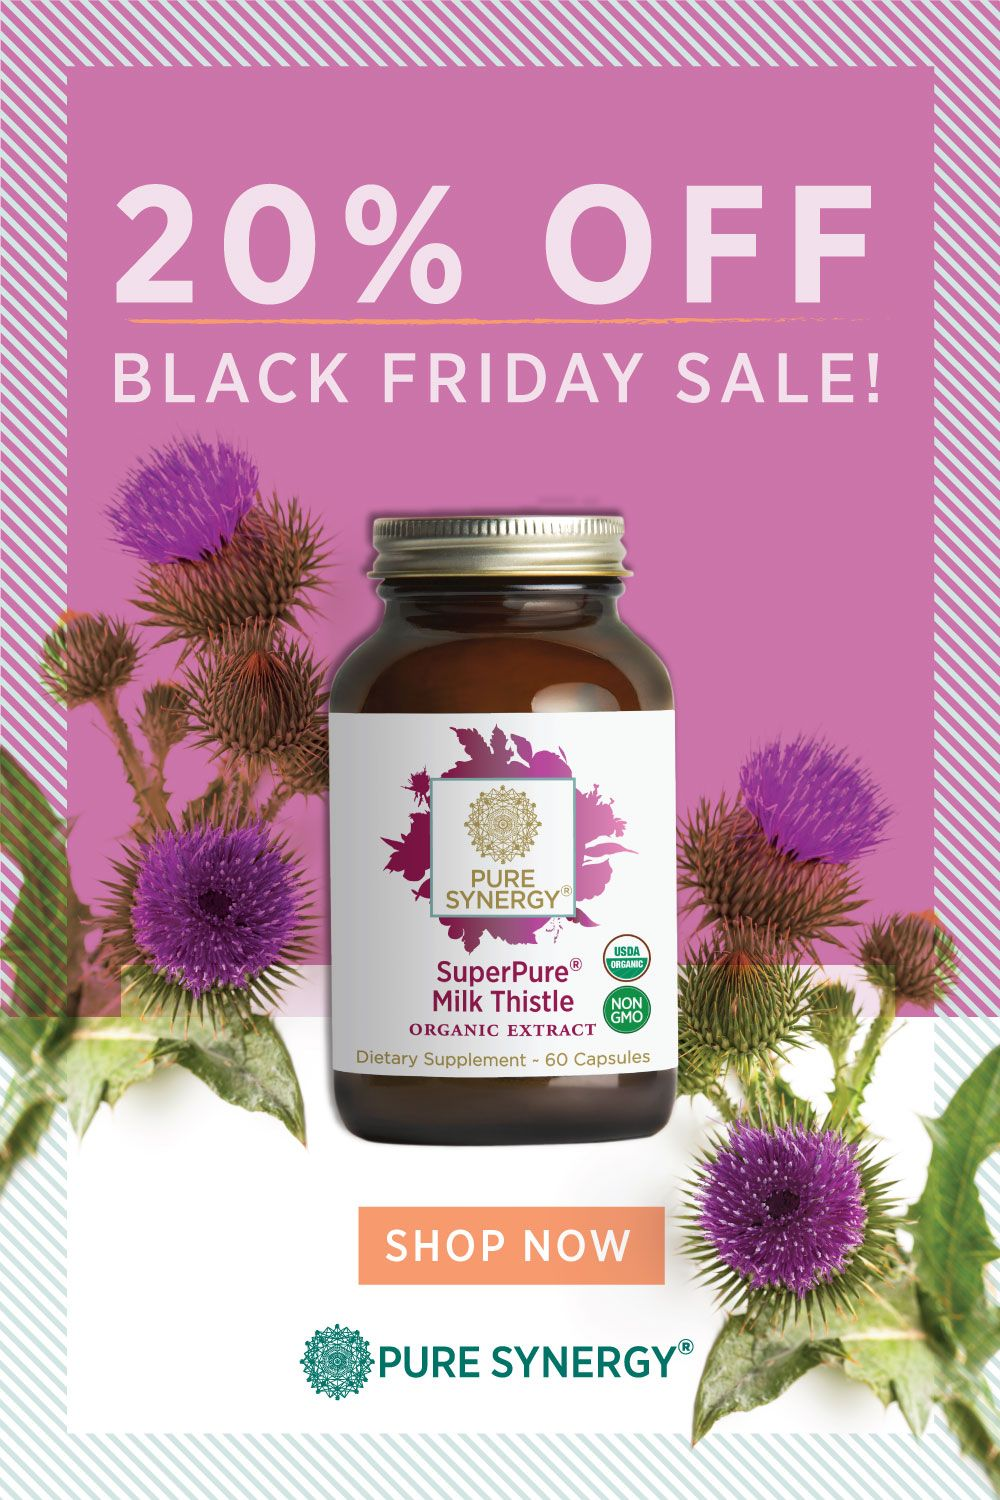 Shop Pure Synergy's Black Friday sale and save 20